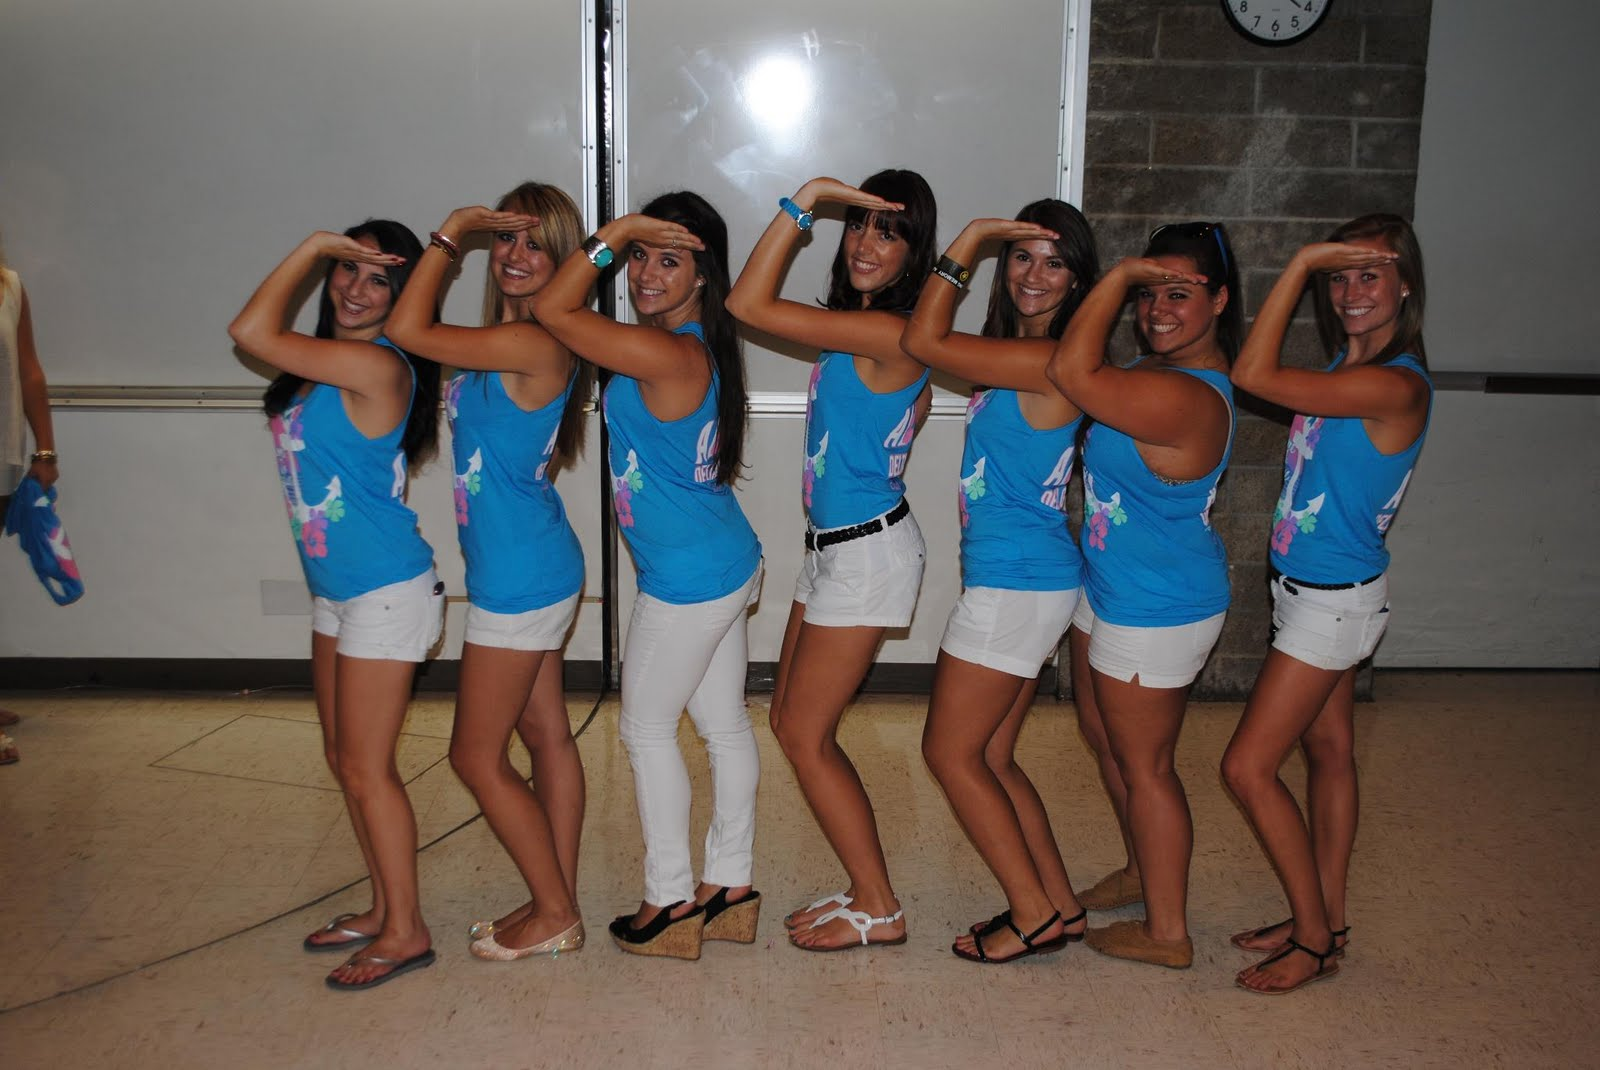 Sorority recruitment http www pic2fly com sorority recruitment html